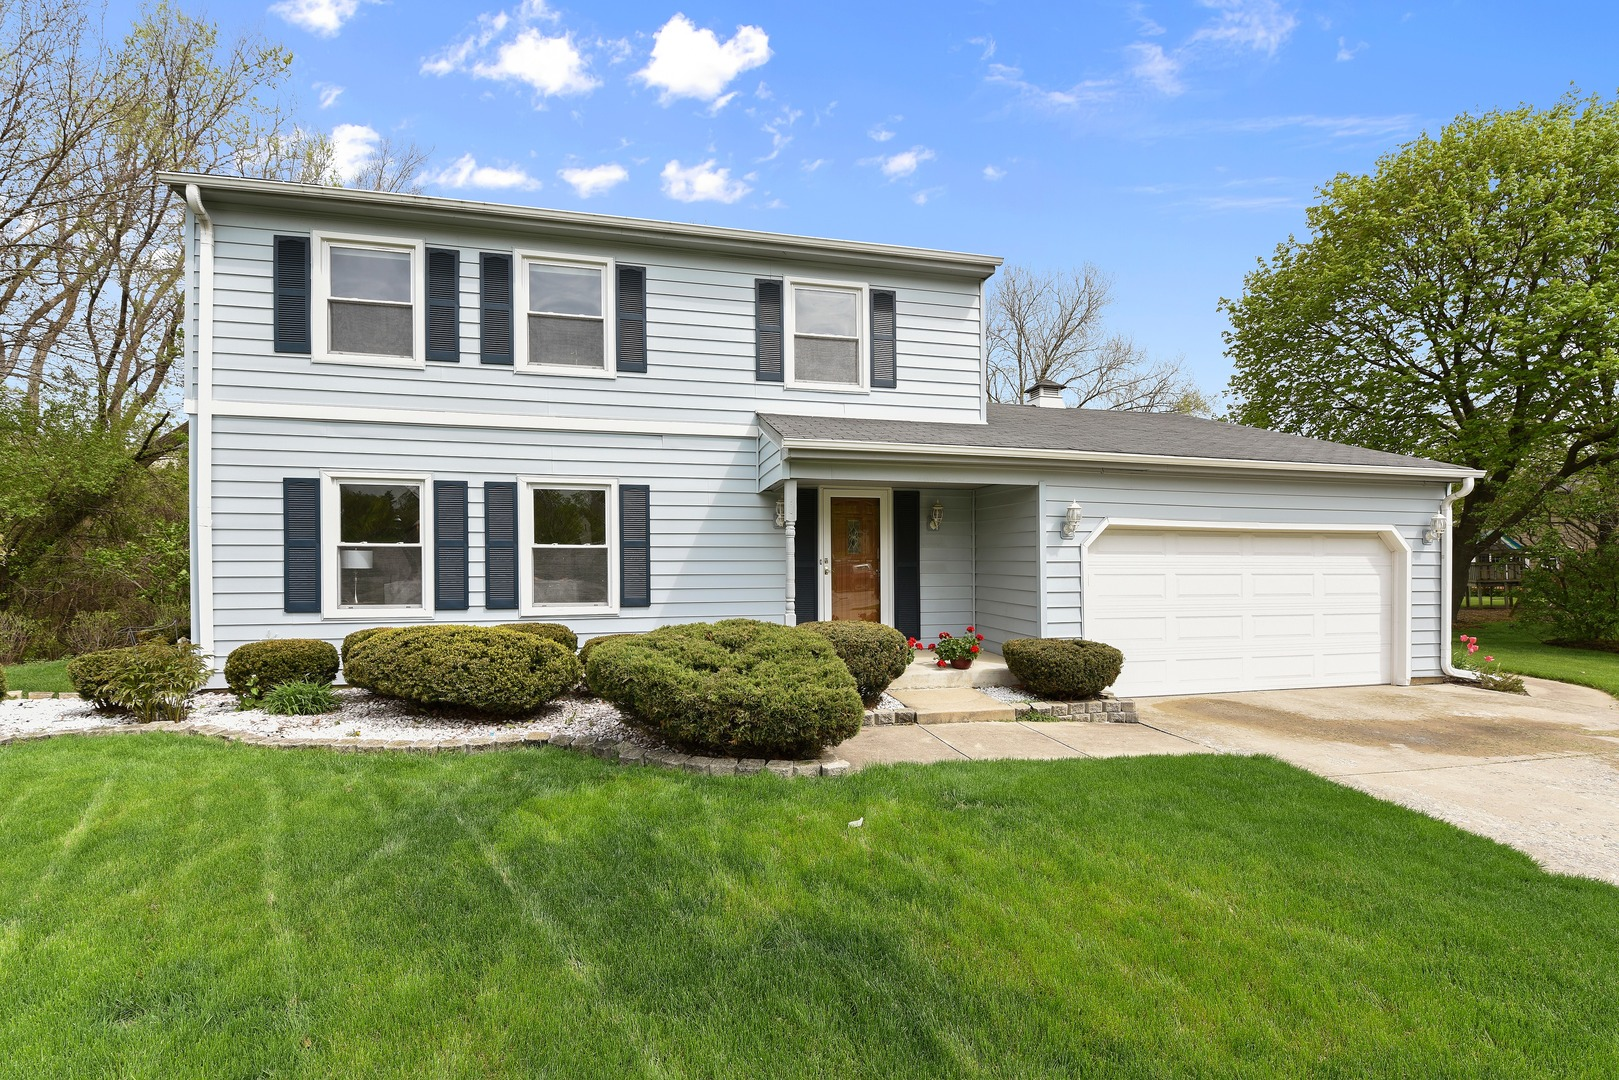 Photo for 1608 Plum Court, Downers Grove, IL 60515 (MLS # 10541254)